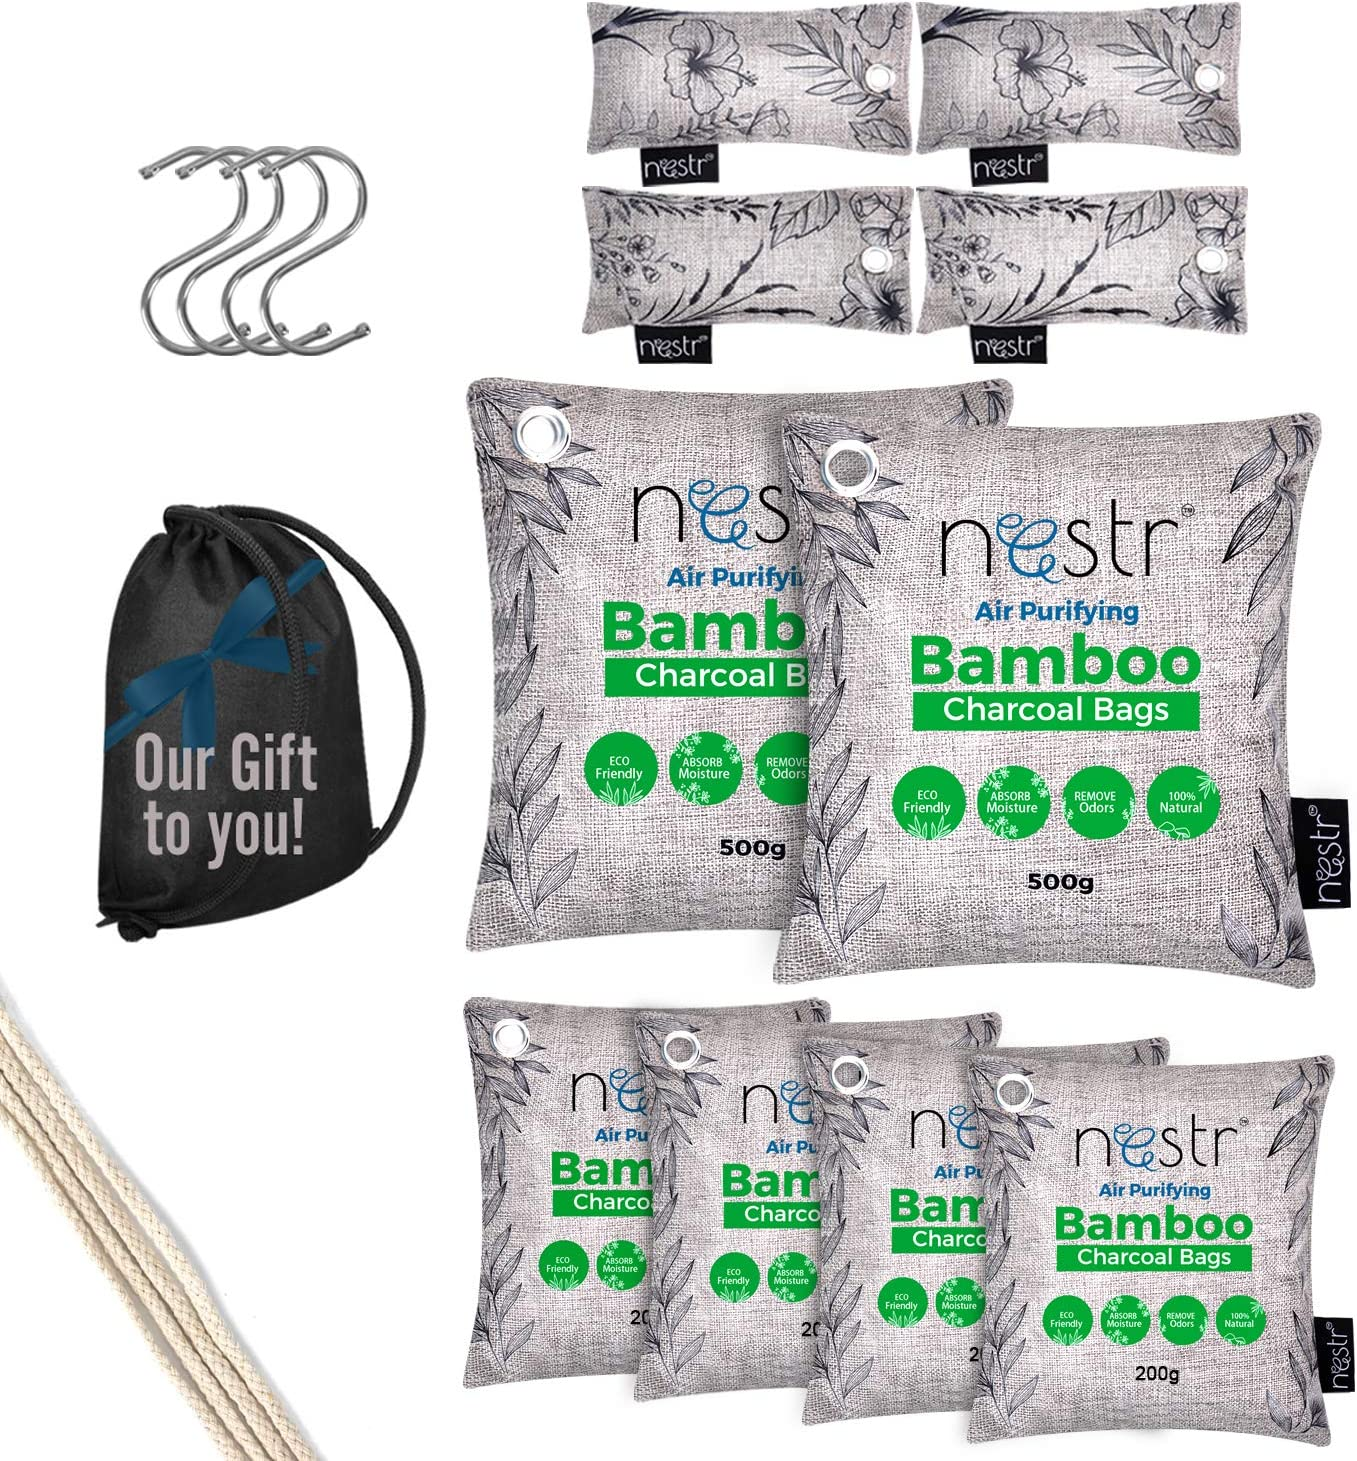 Nestr Nature Fresh Charcoal Bags - 10-Pack Home & Car Activated Bamboo Charcoal Air Purifying Bag, Closet Deodorizer, Freshener, Dehumidifier, Absorber, Musty Smell Eliminator for Basements